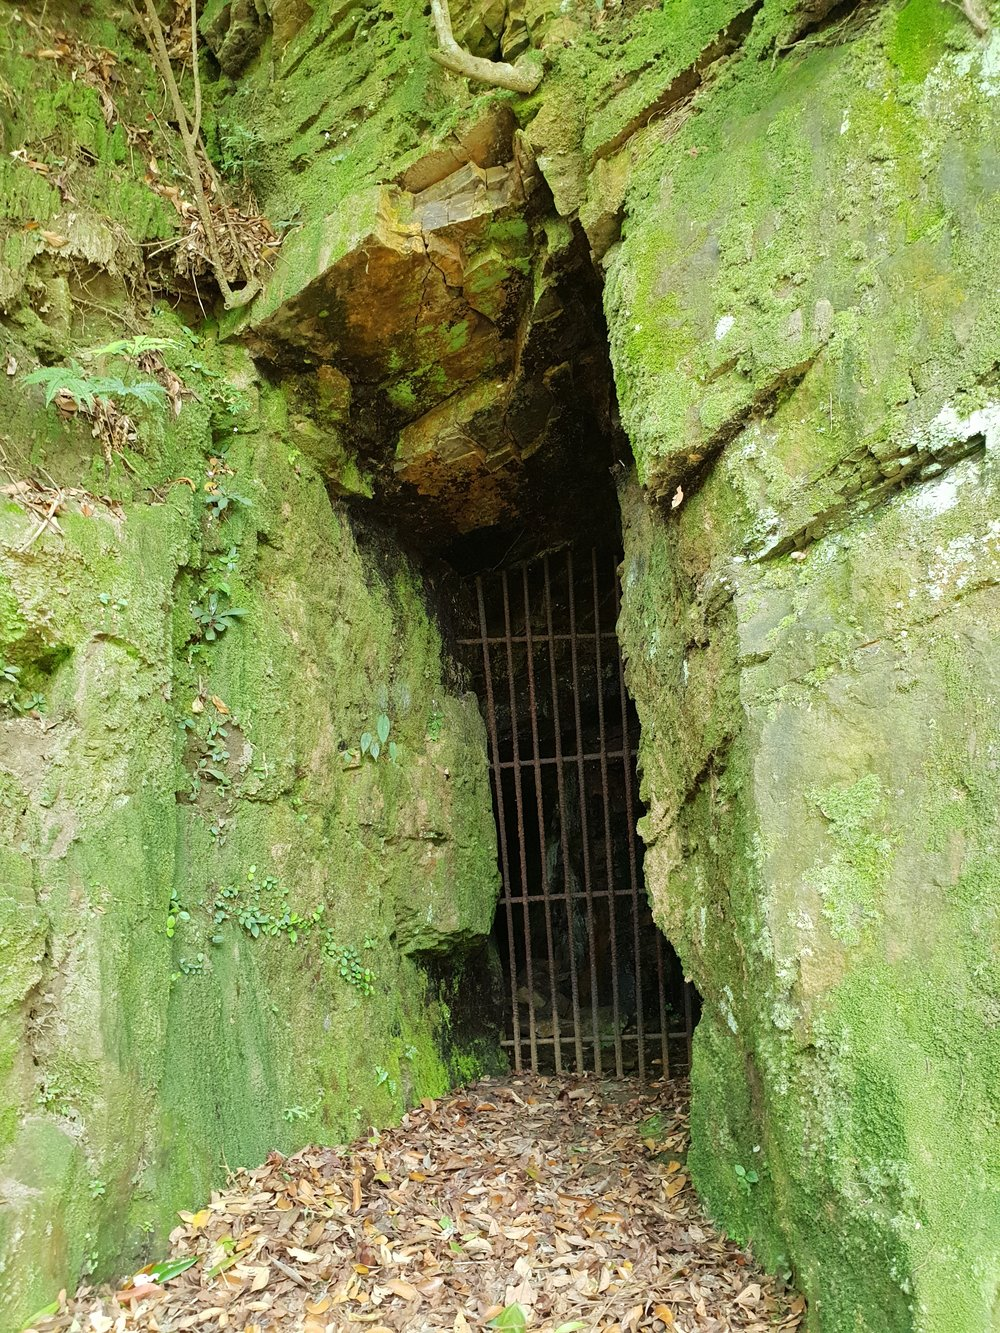 A narrow mine entrance near Jiufen